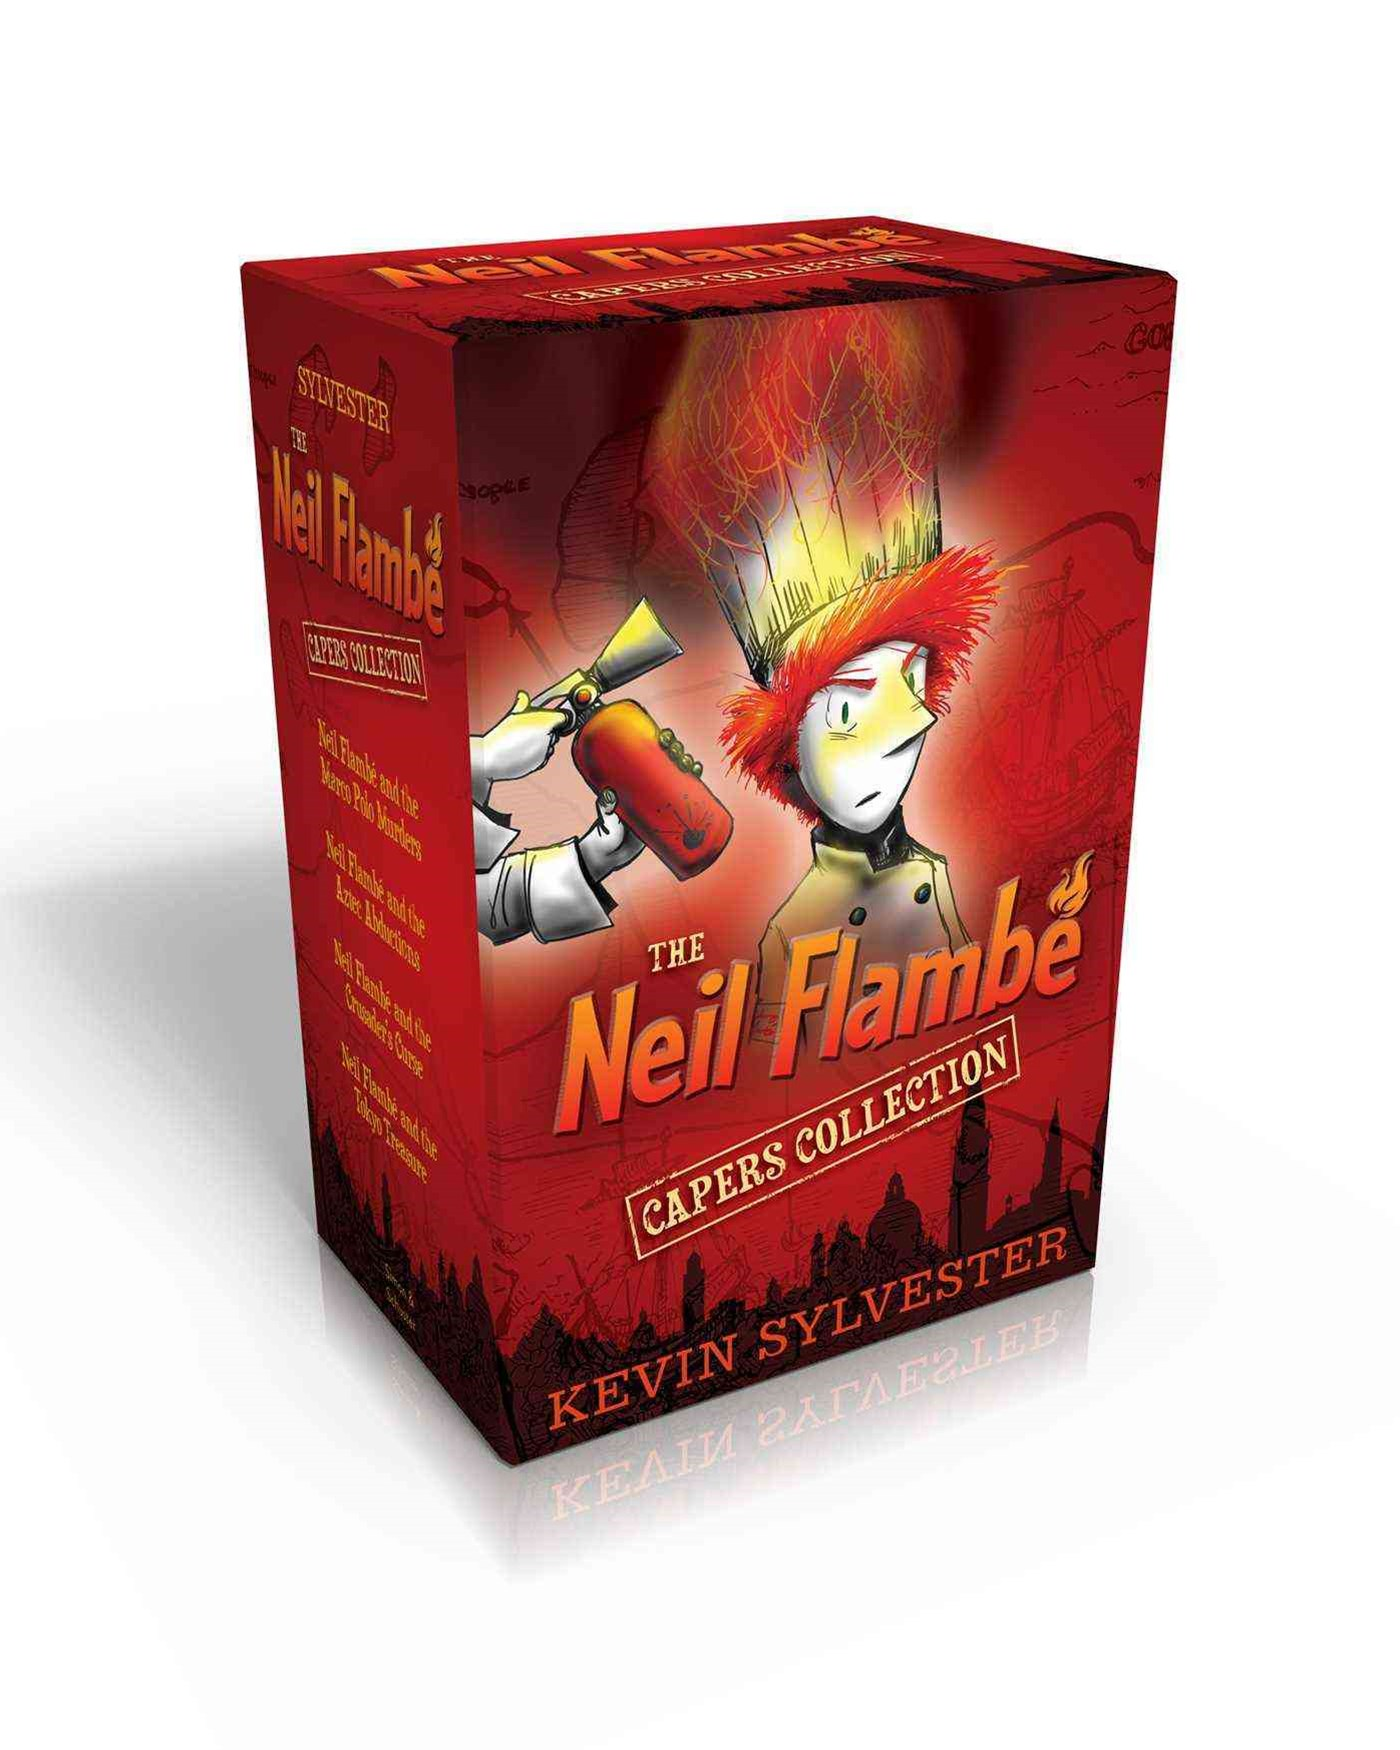 The Neil Flamb+¬ Capers Collection